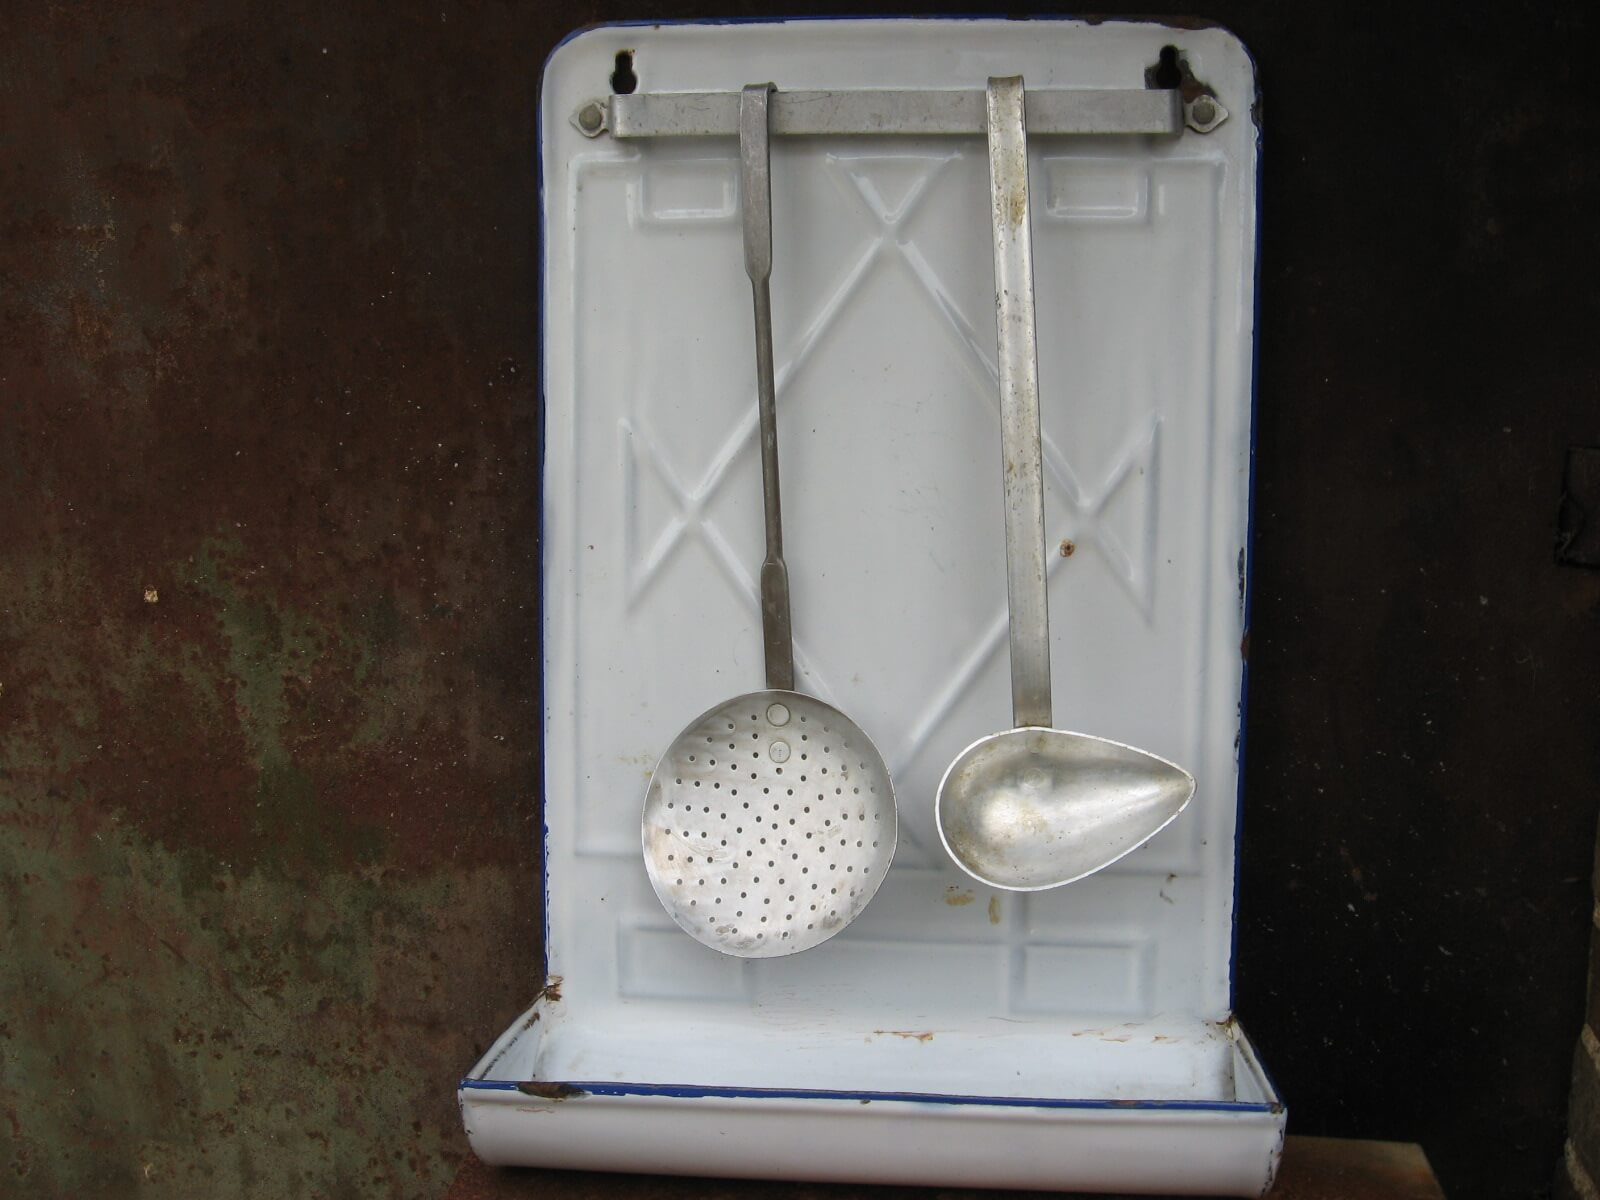 French white enamel utensil drainer at PumpjackPiddlewick